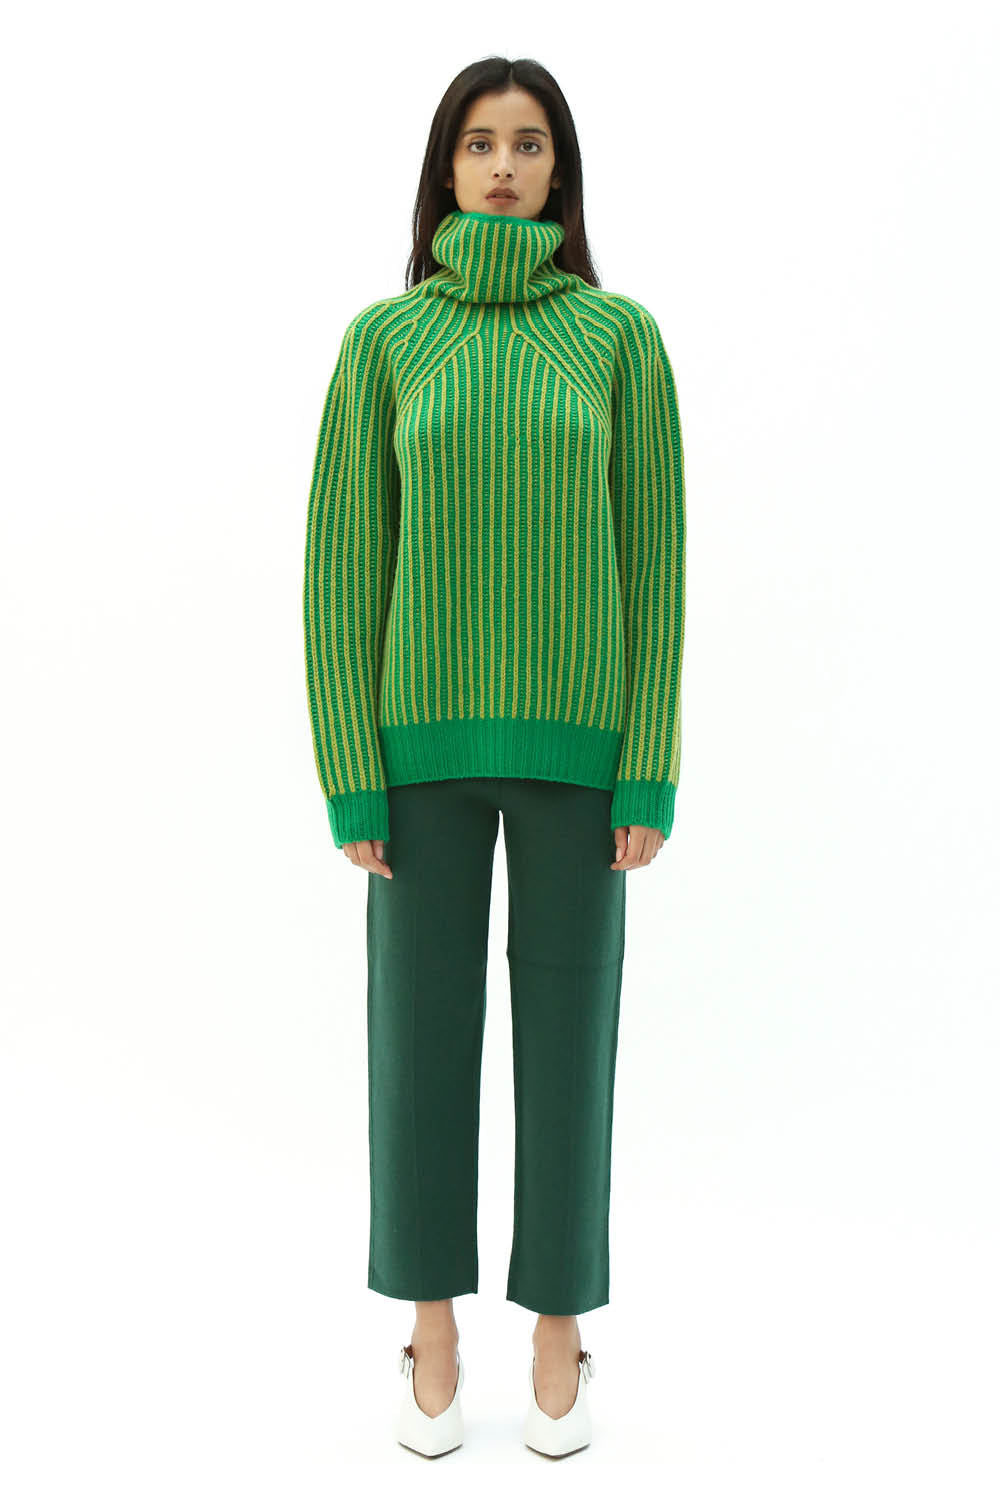 Plated Jumper in Green/Yellow